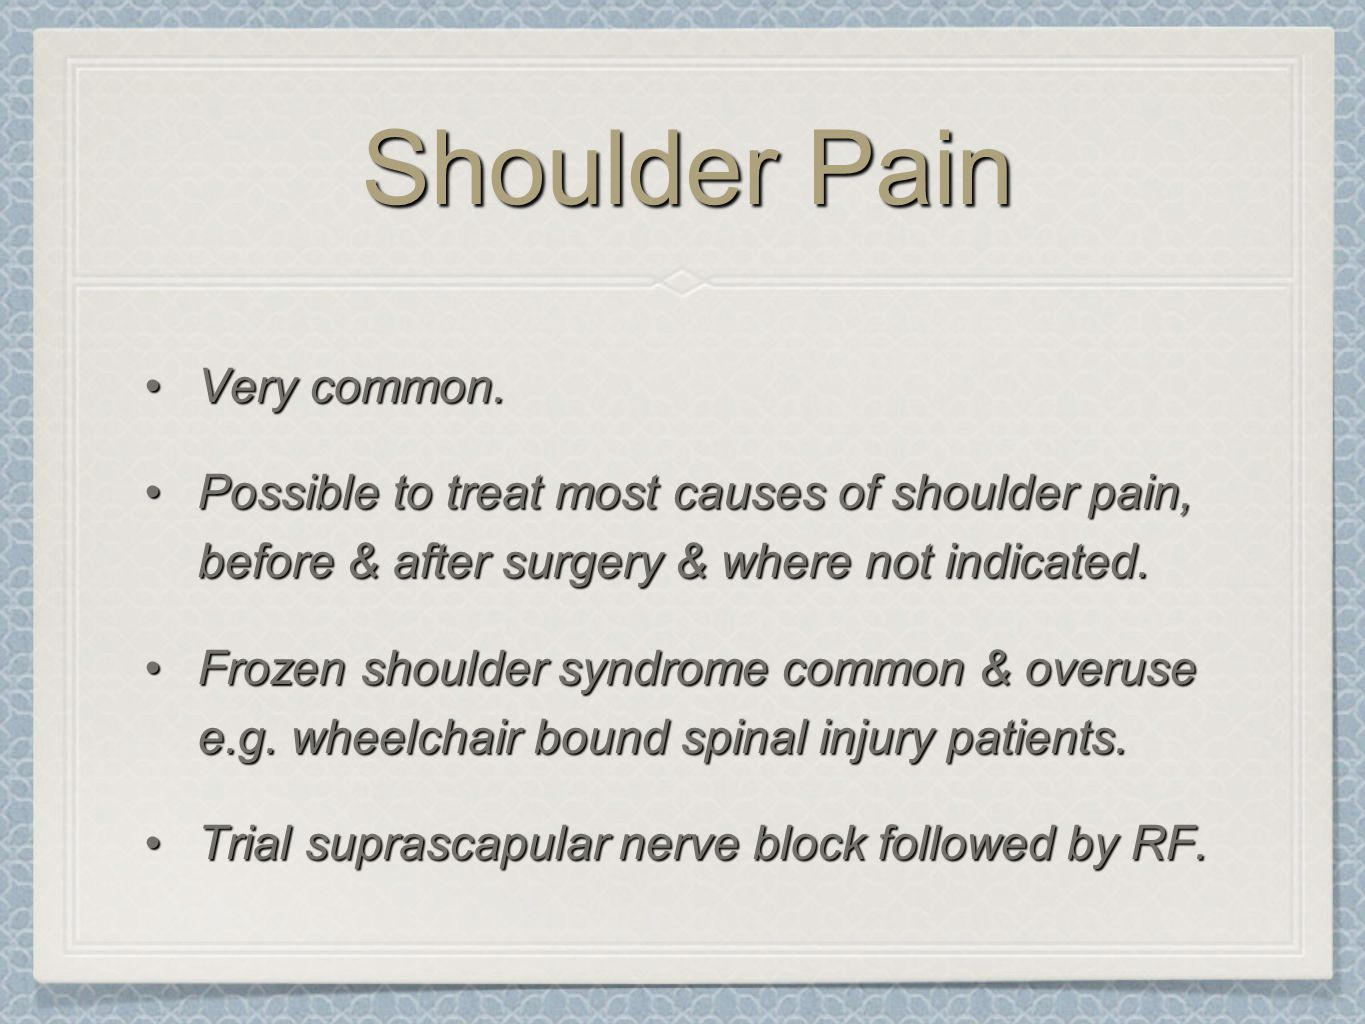 Shoulder Pain Very common.Very common. Possible to treat most causes of shoulder pain, before & after surgery & where not indicated.Possible to treat